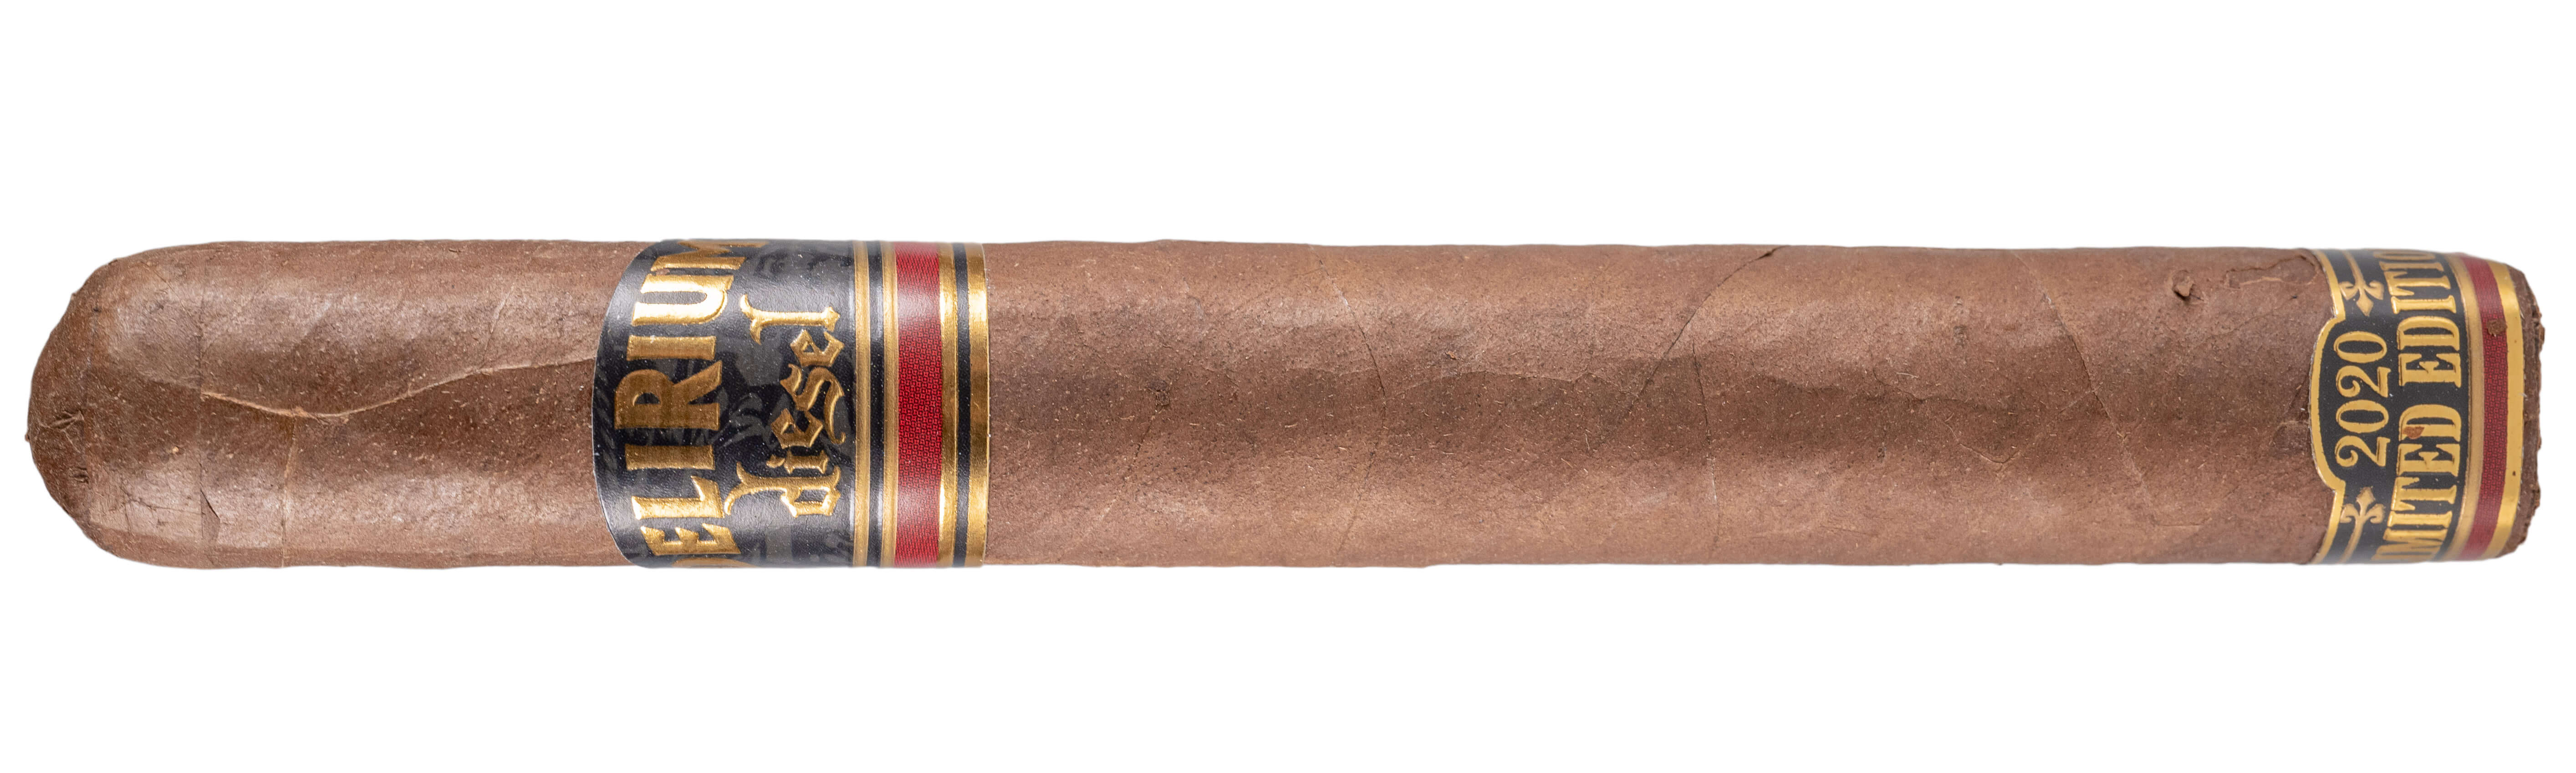 Blind Cigar Review: Diesel | Delirium Limited Edition 2020